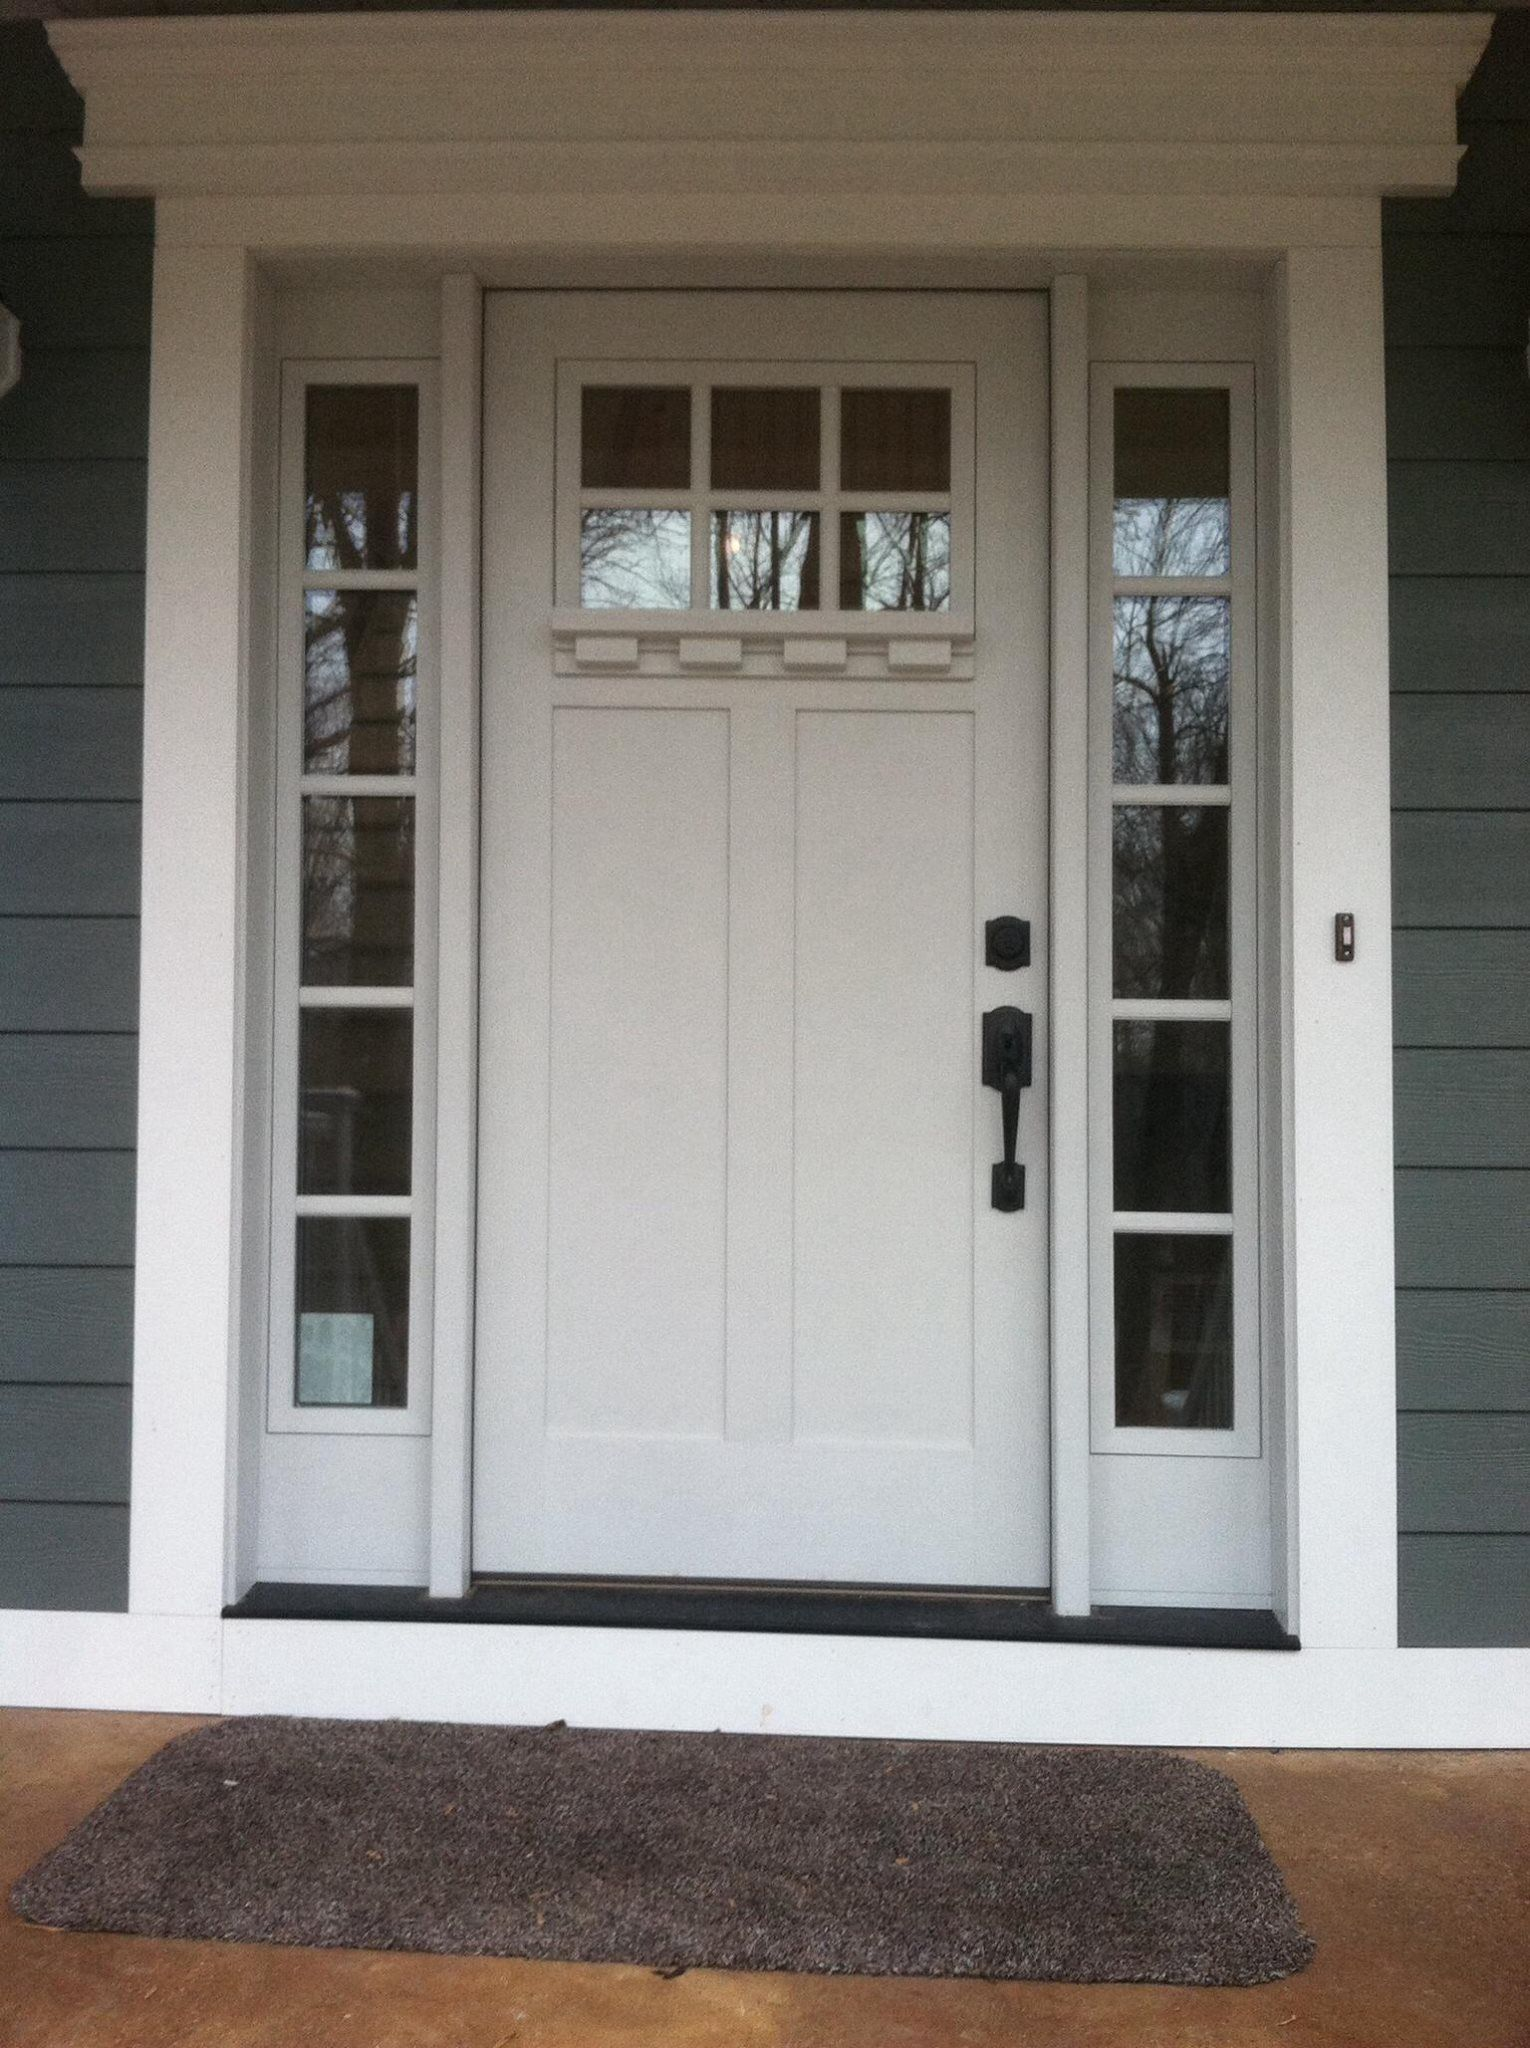 Clopay Craftsman Collection Fiberglass Front Door Factory Painted In White  With Clarion Windows, Sidelights And Options Dentil Shelf Molding.  Www.clopay.com